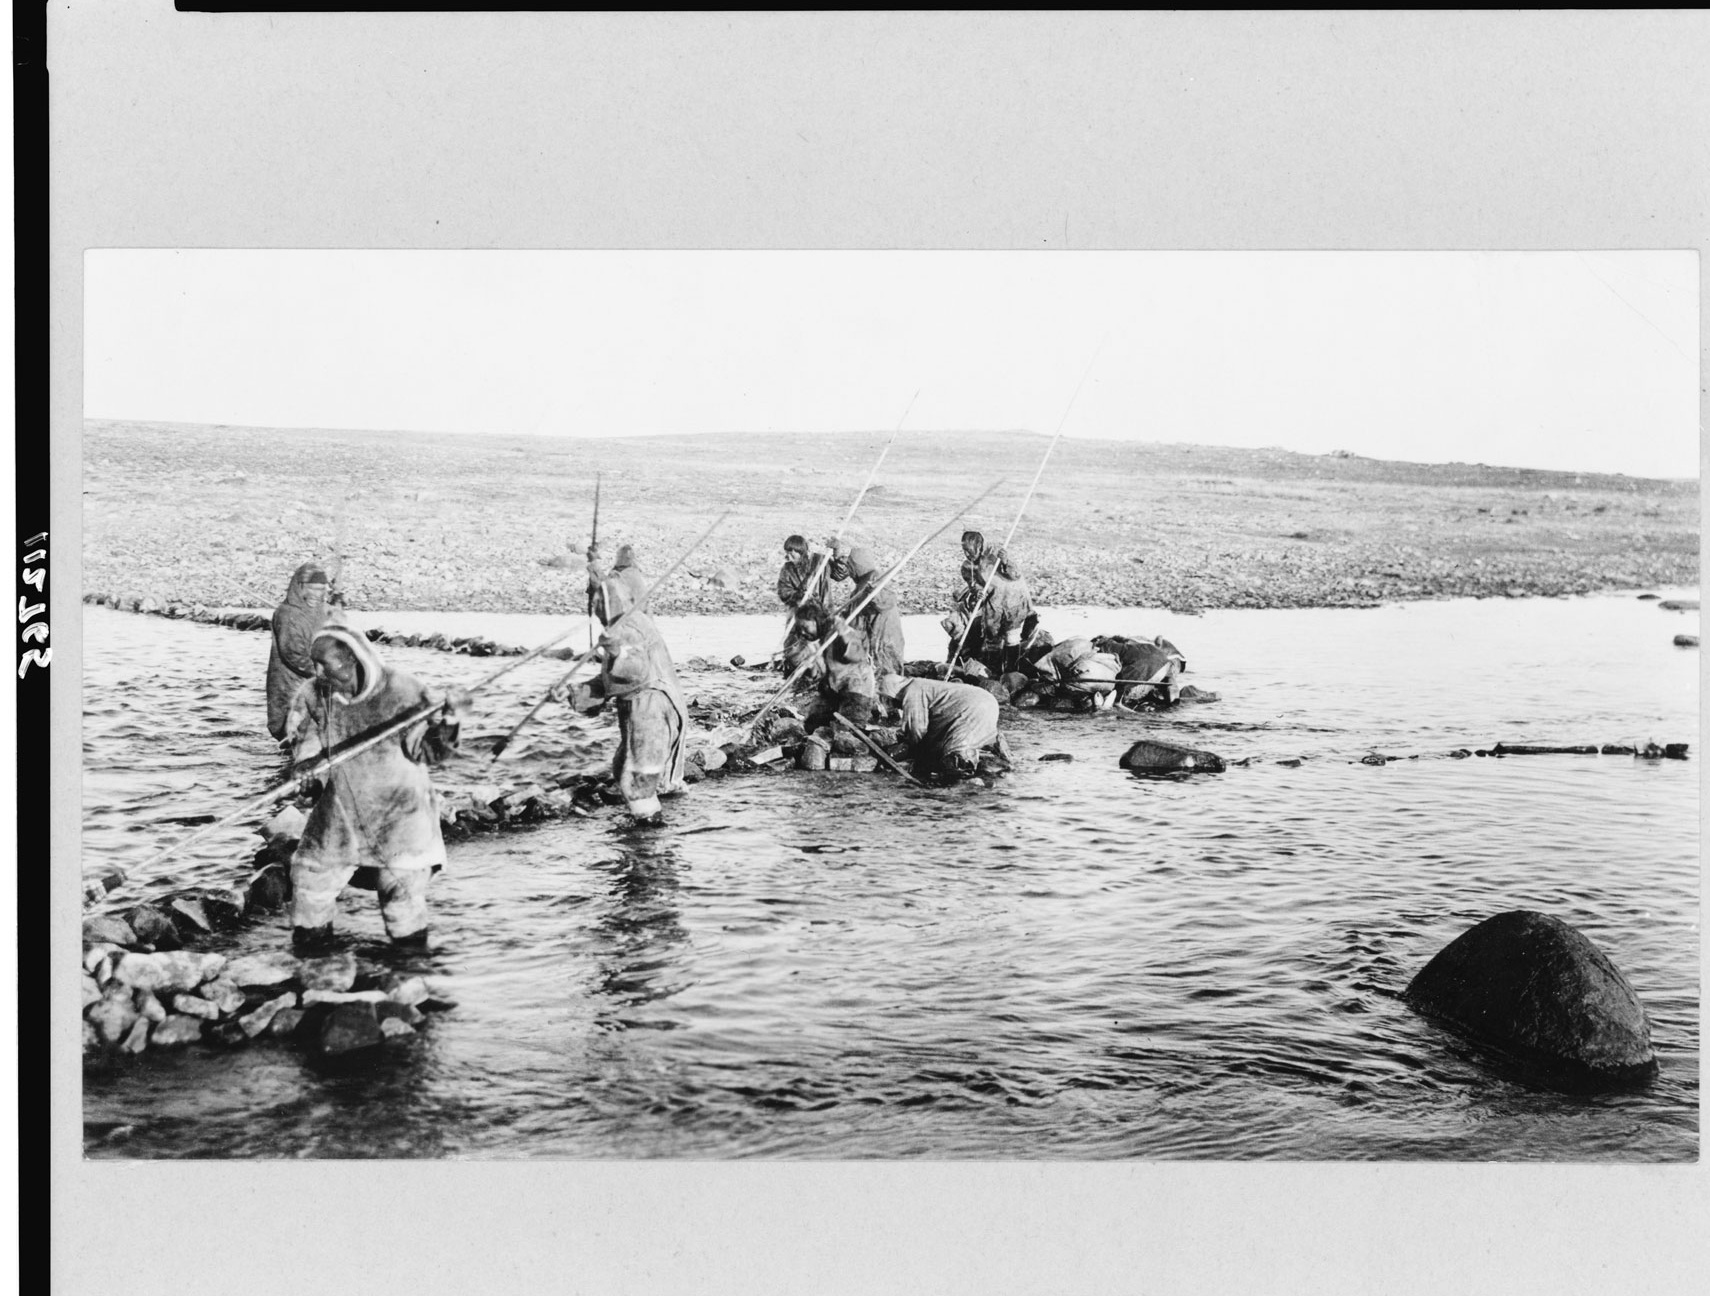 Inuit hunters spear fish for salmon in a river in the early 1900's ...